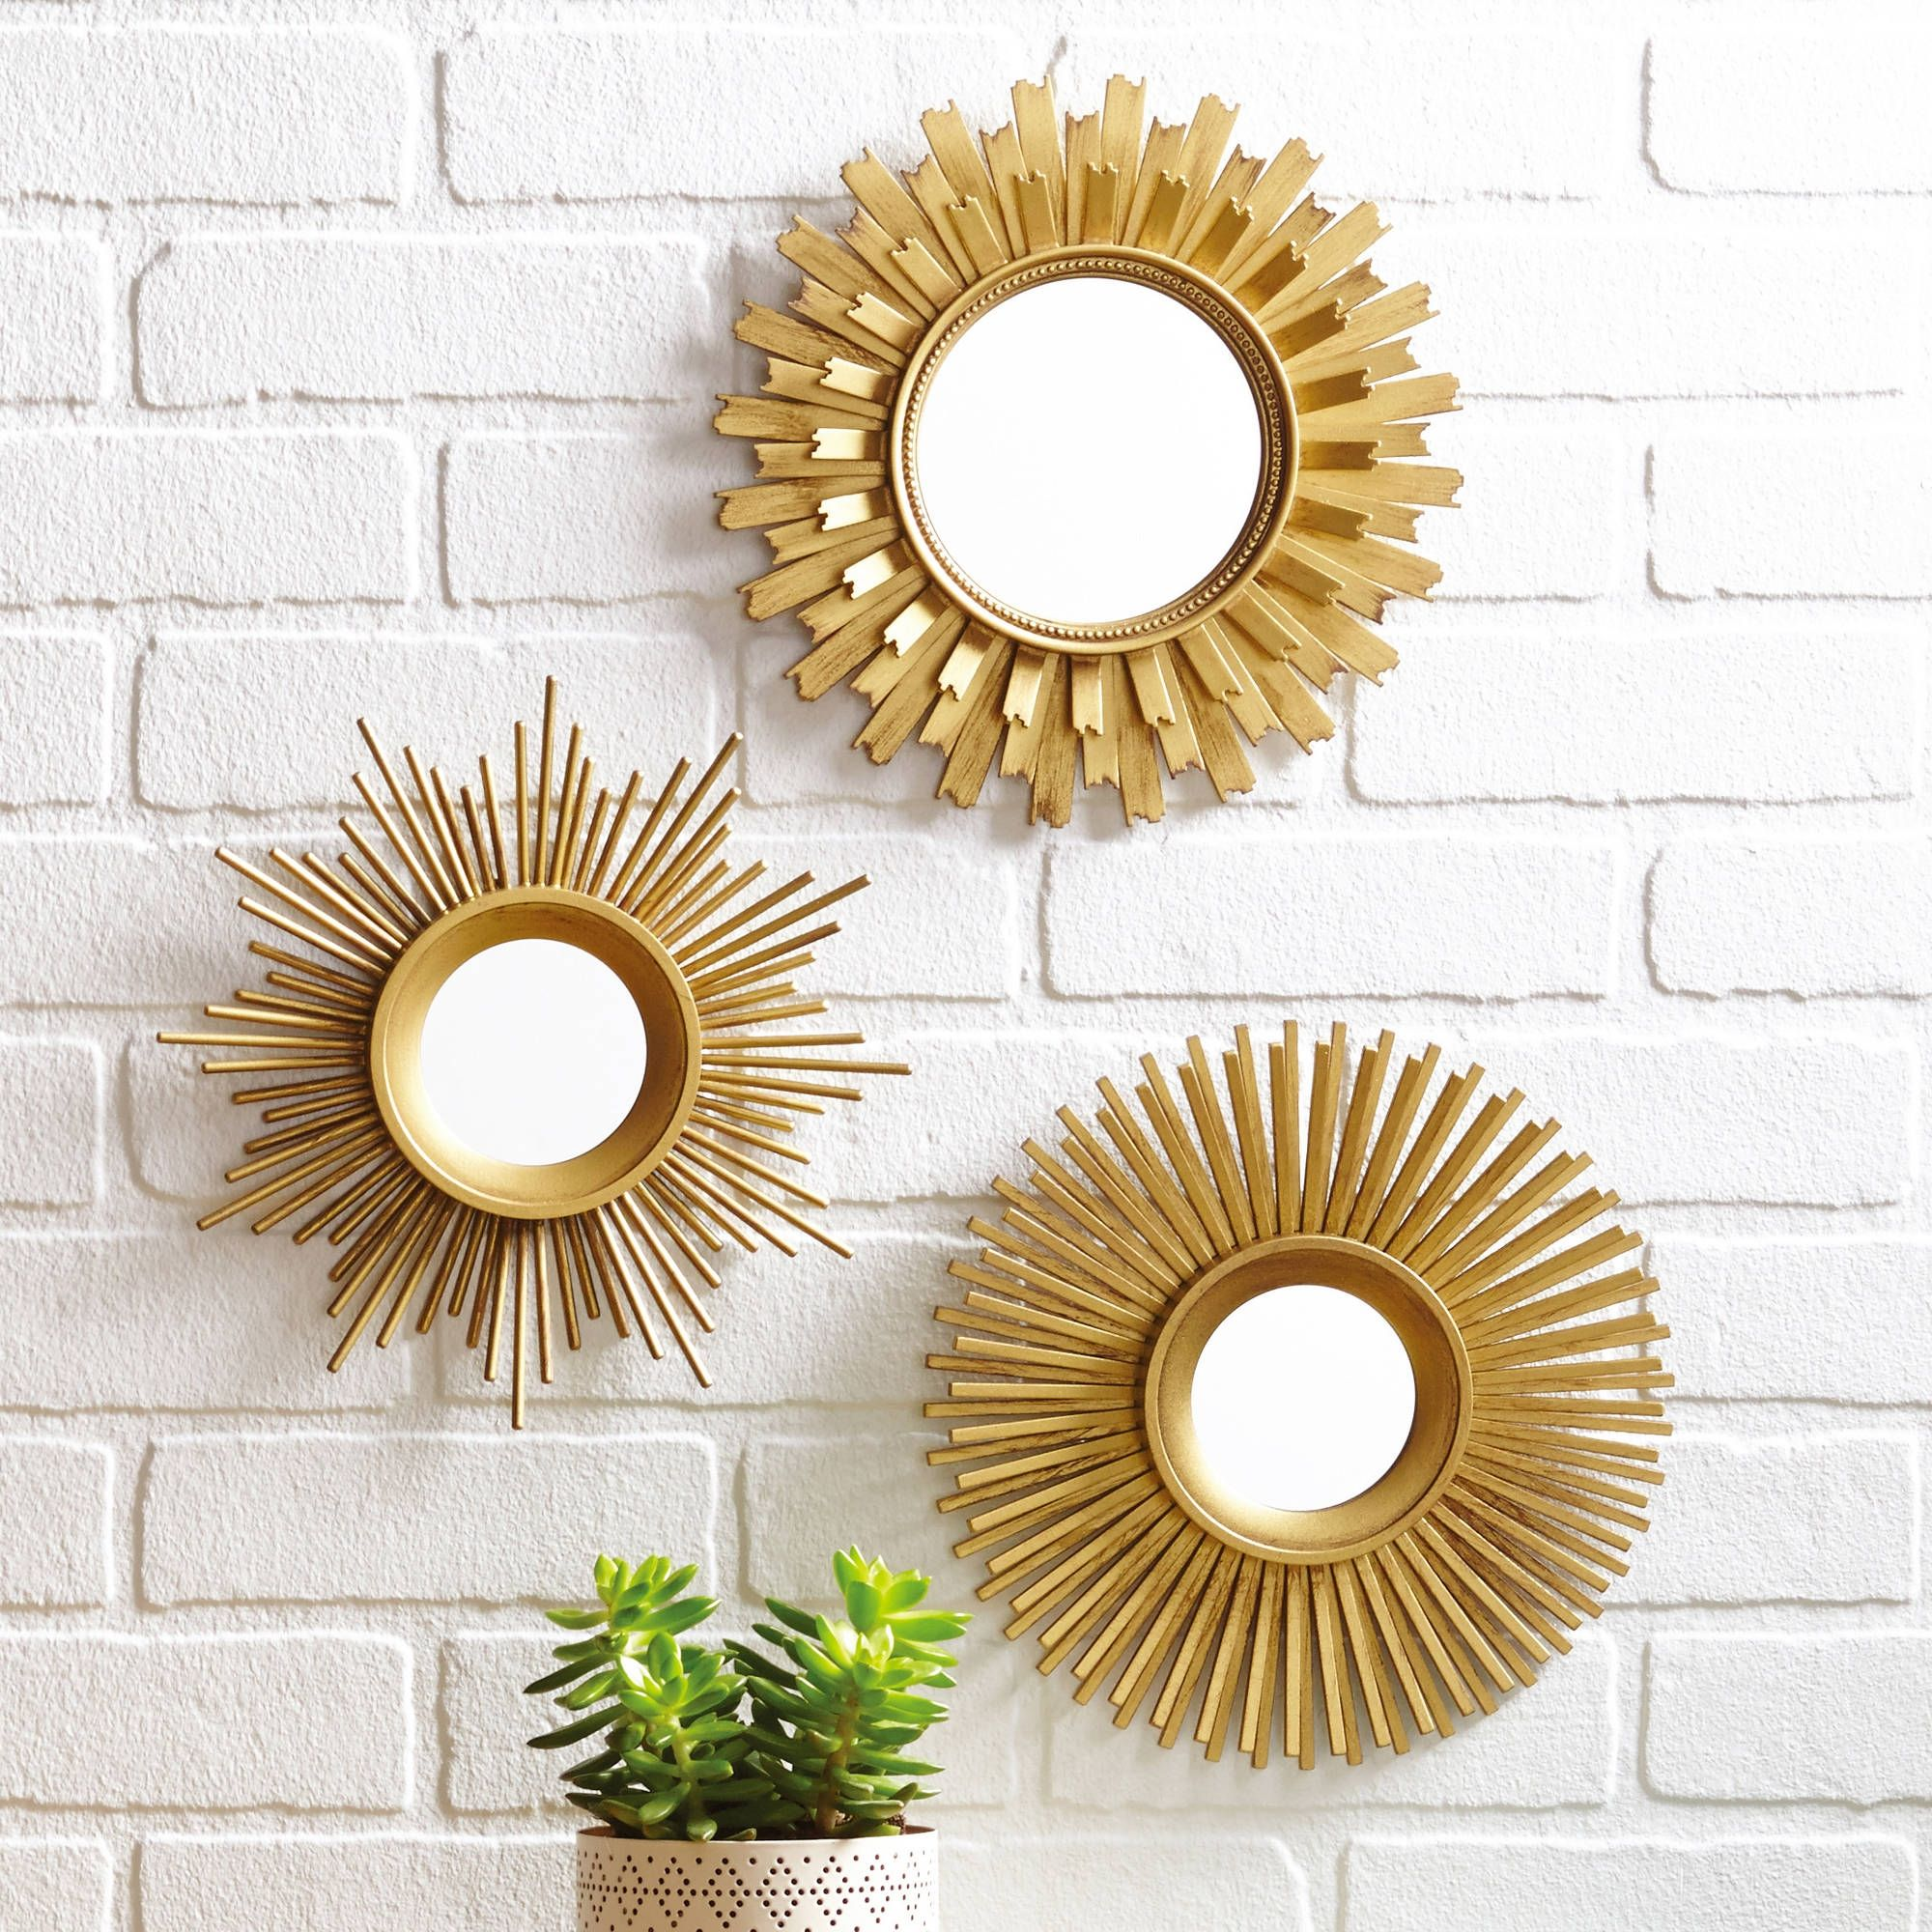 Small Decorative Wall Mirror Set Gold Sunburst Mirror Sunburst